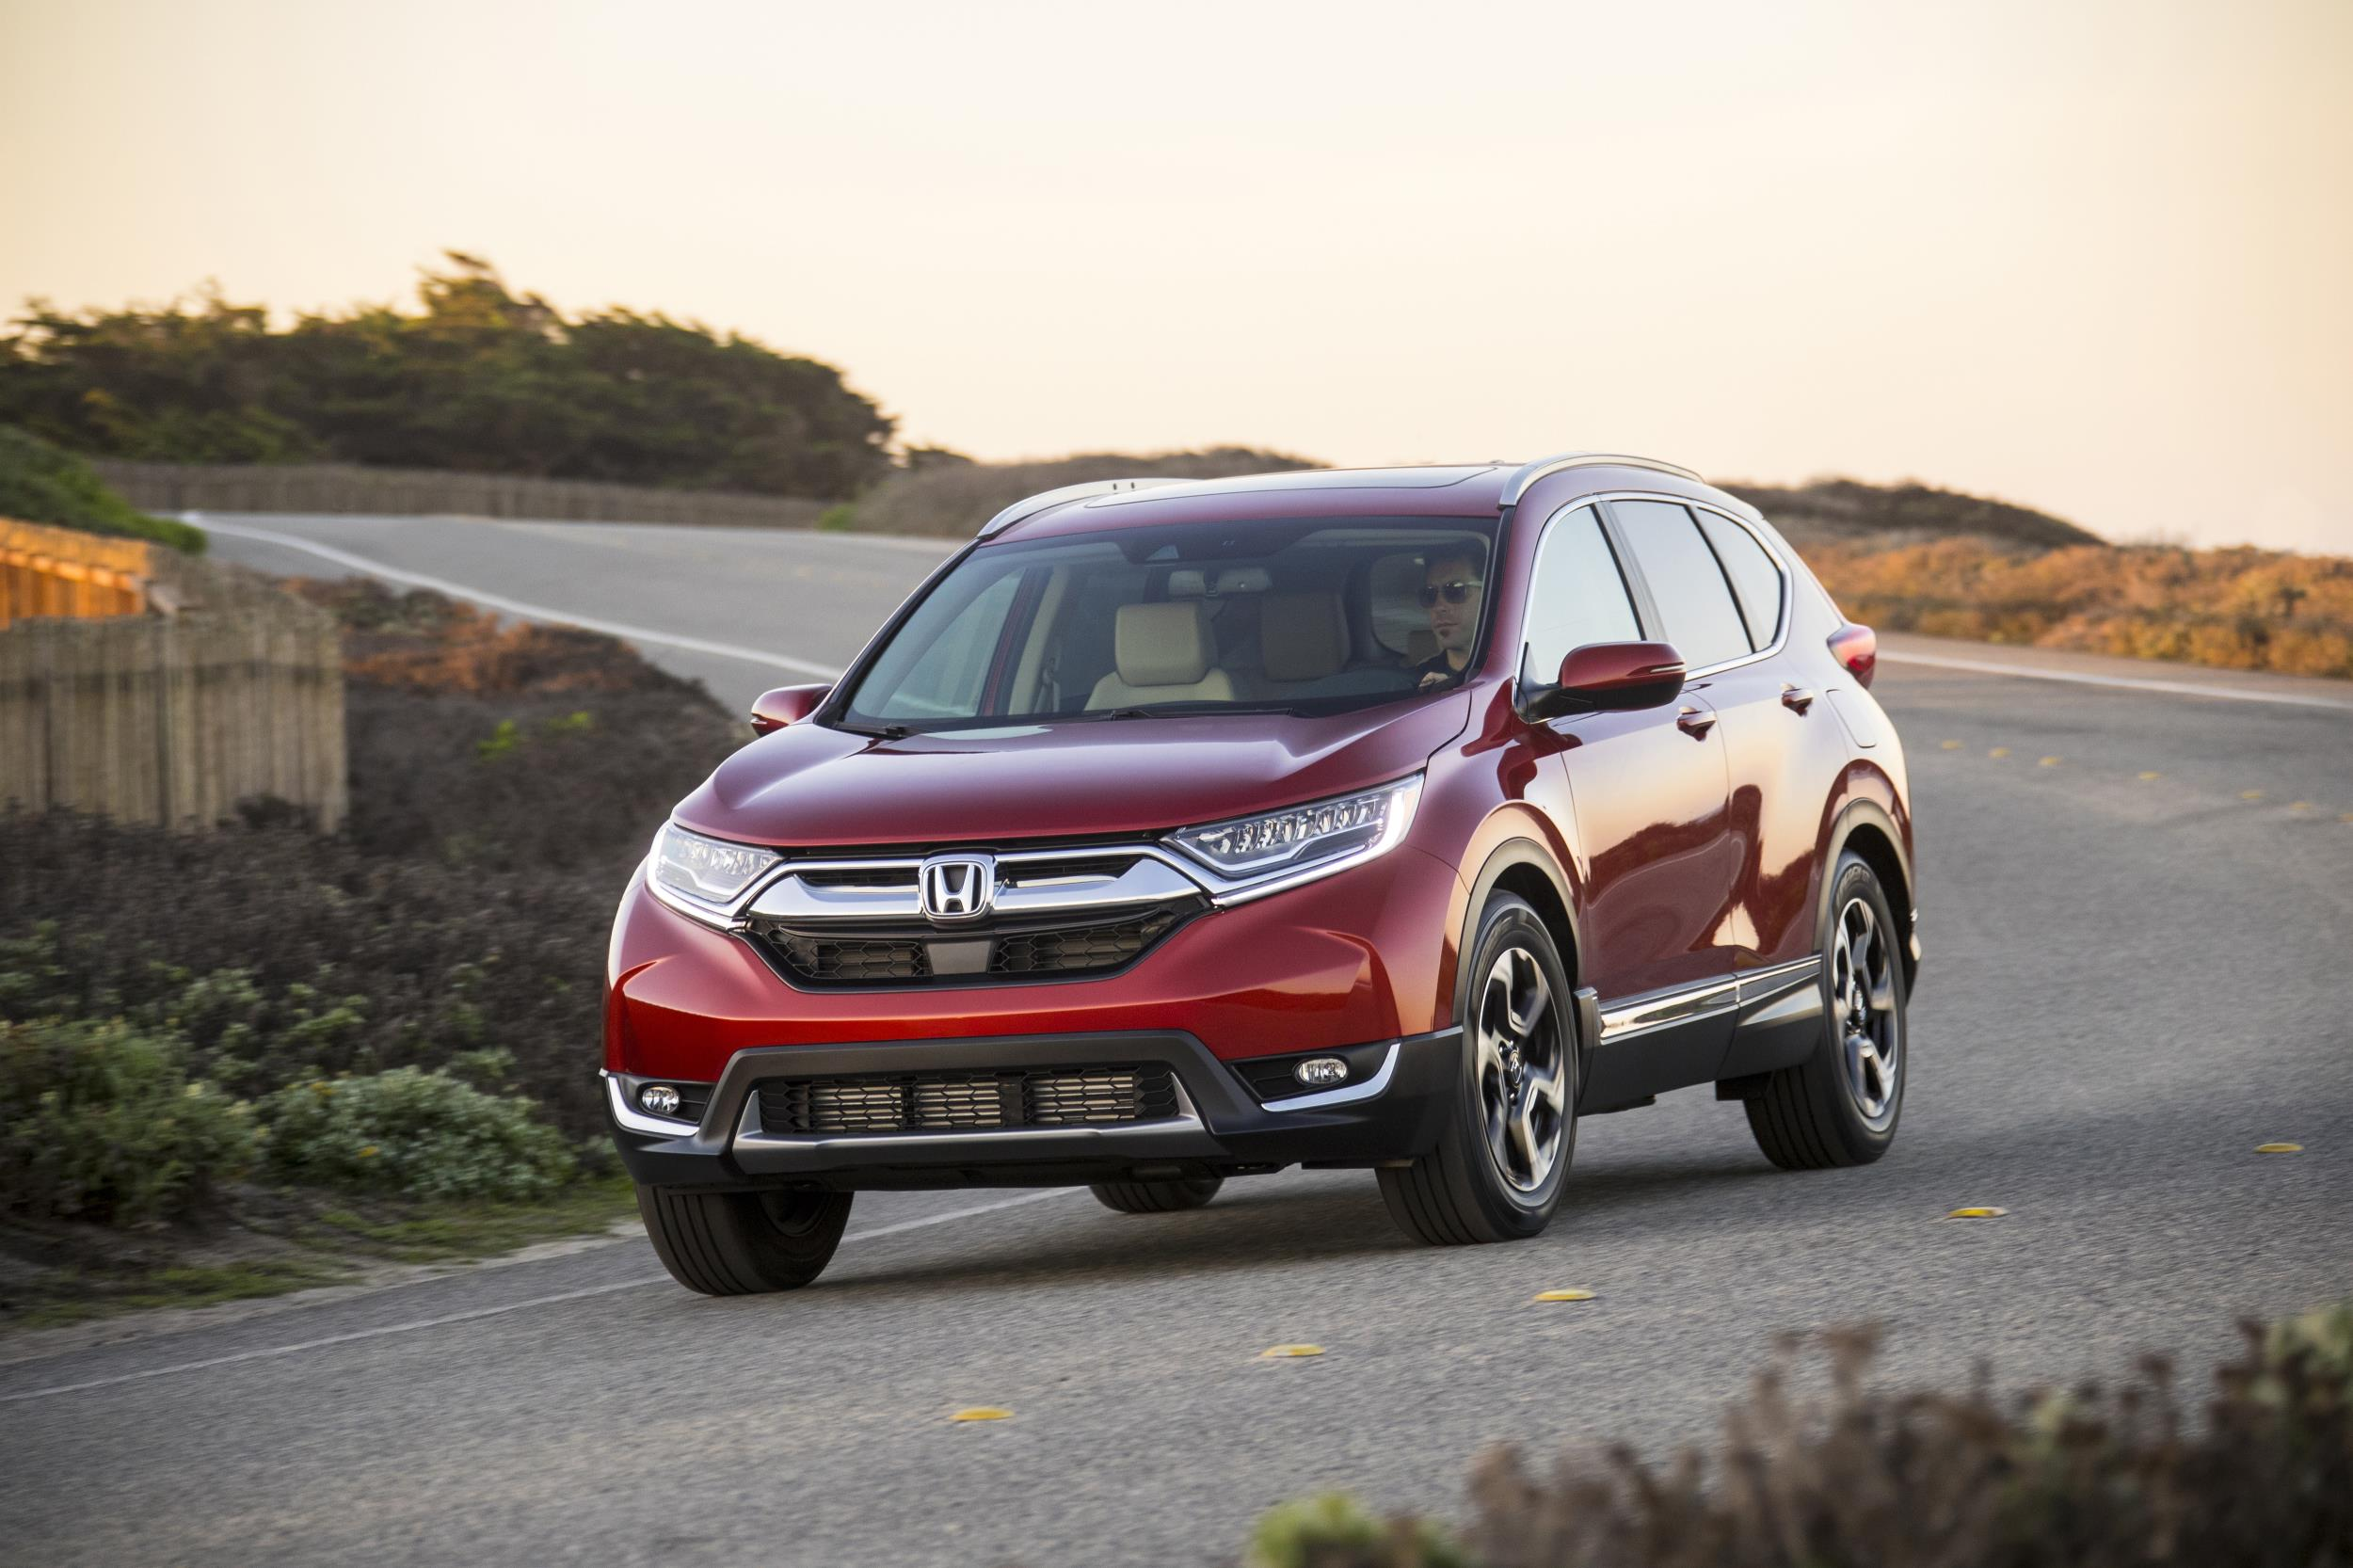 Honda CR-V, one of Honda's top selling vehicles in calendar year 2017